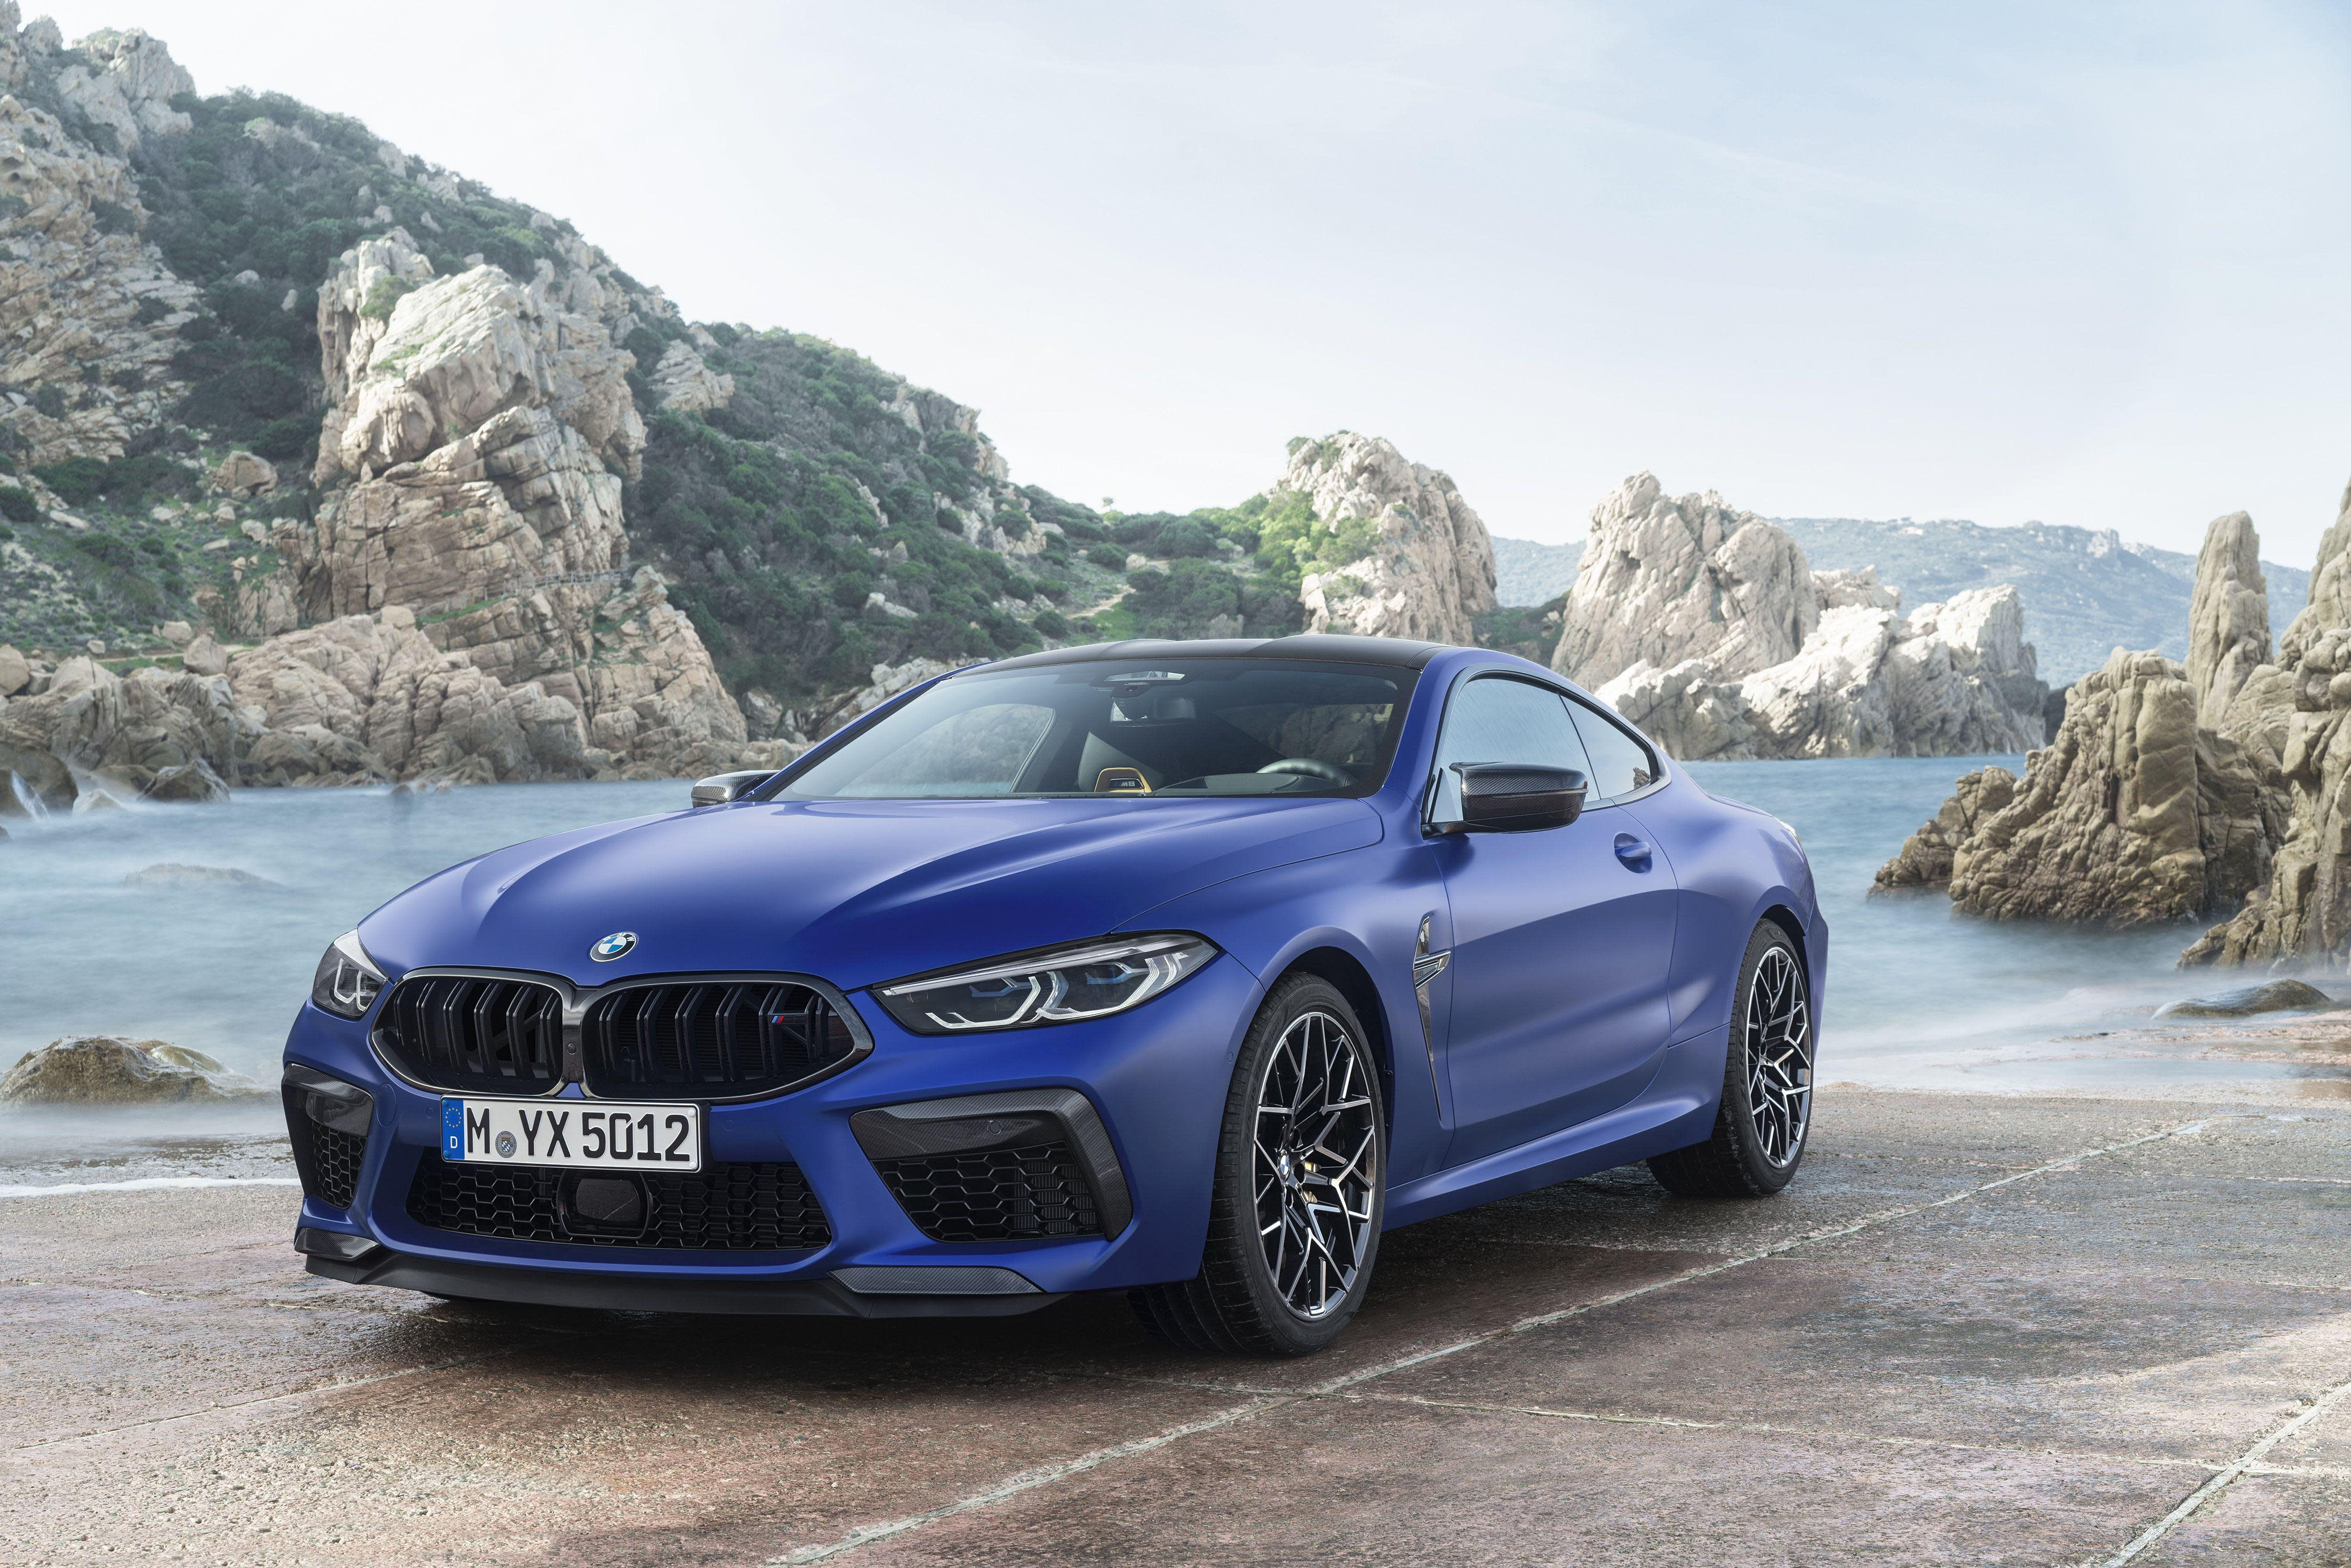 BMW Vehicles may Unexpectedly Shift into Neutral